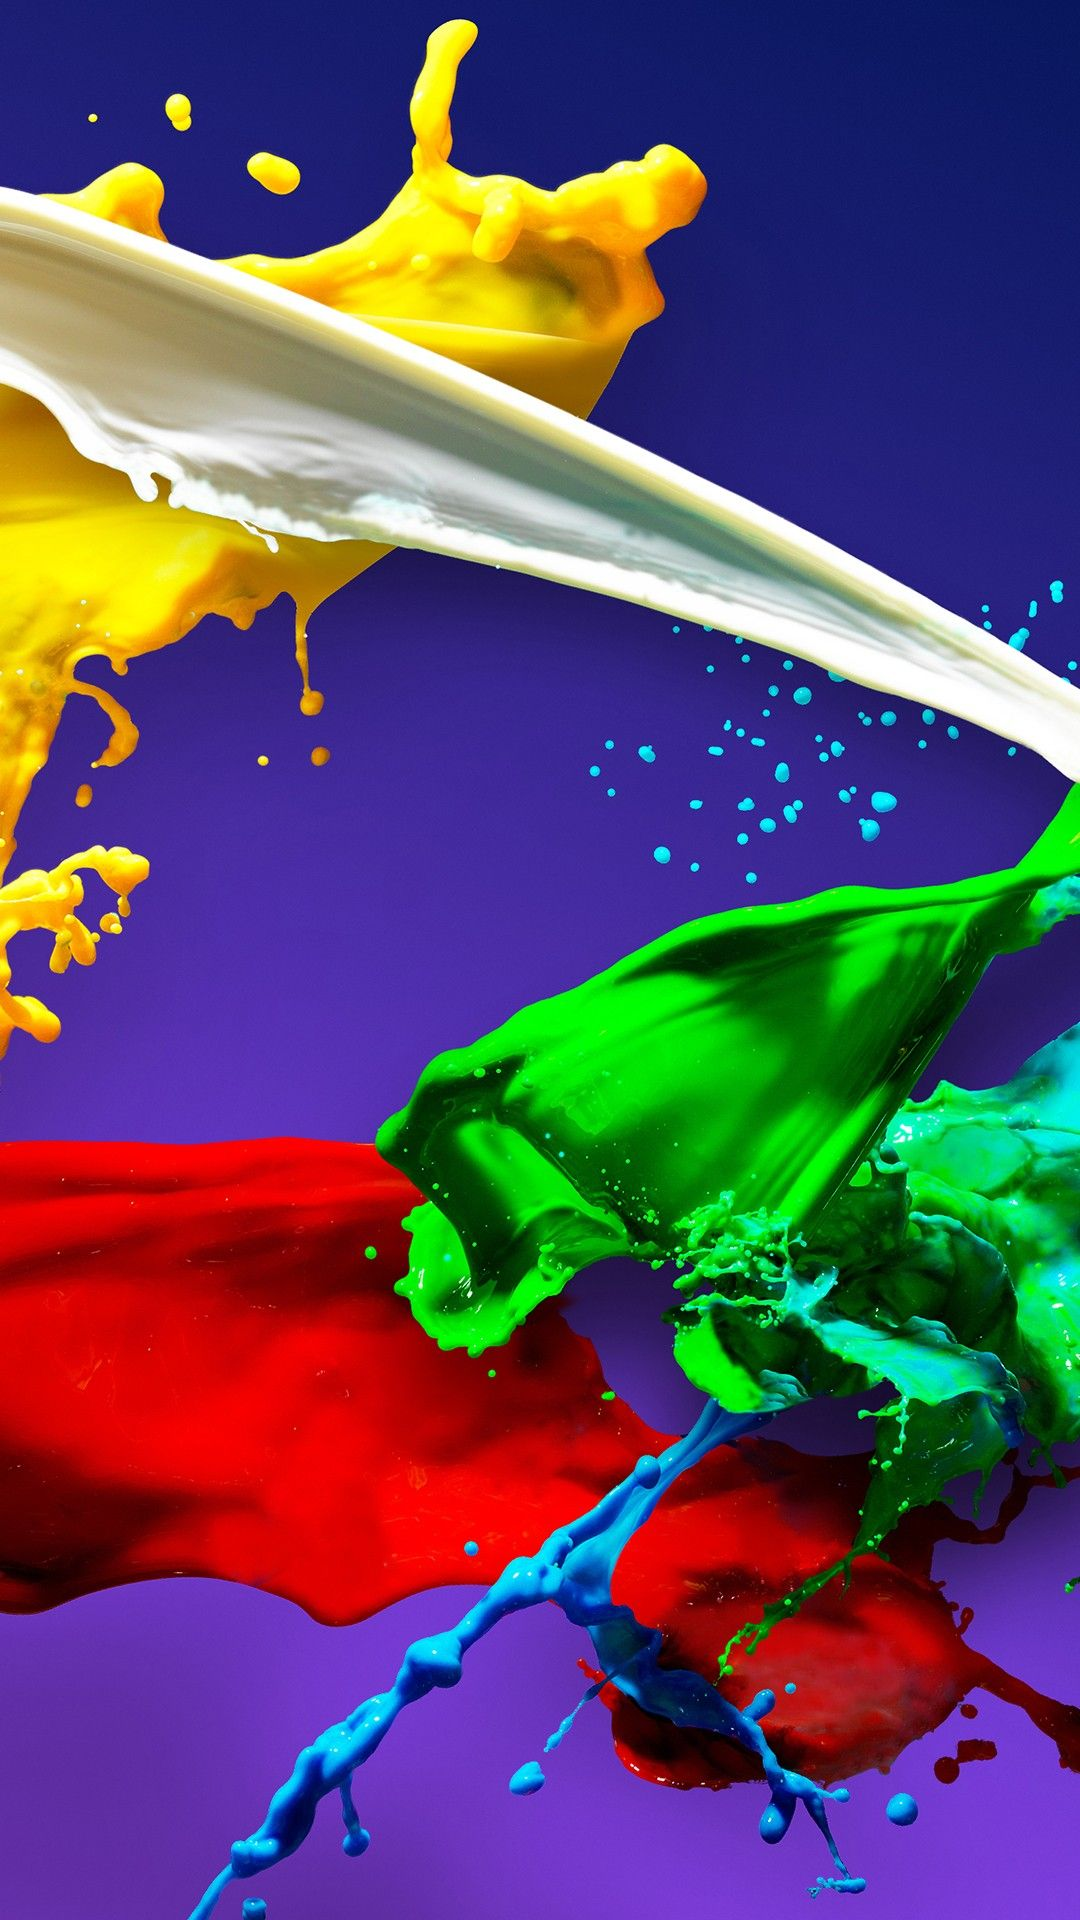 Misc Colors Splash Wallpapers Hd 4k Background For Android Colorful Wallpaper Iphone Wallpaper Blur Paint Splash Background